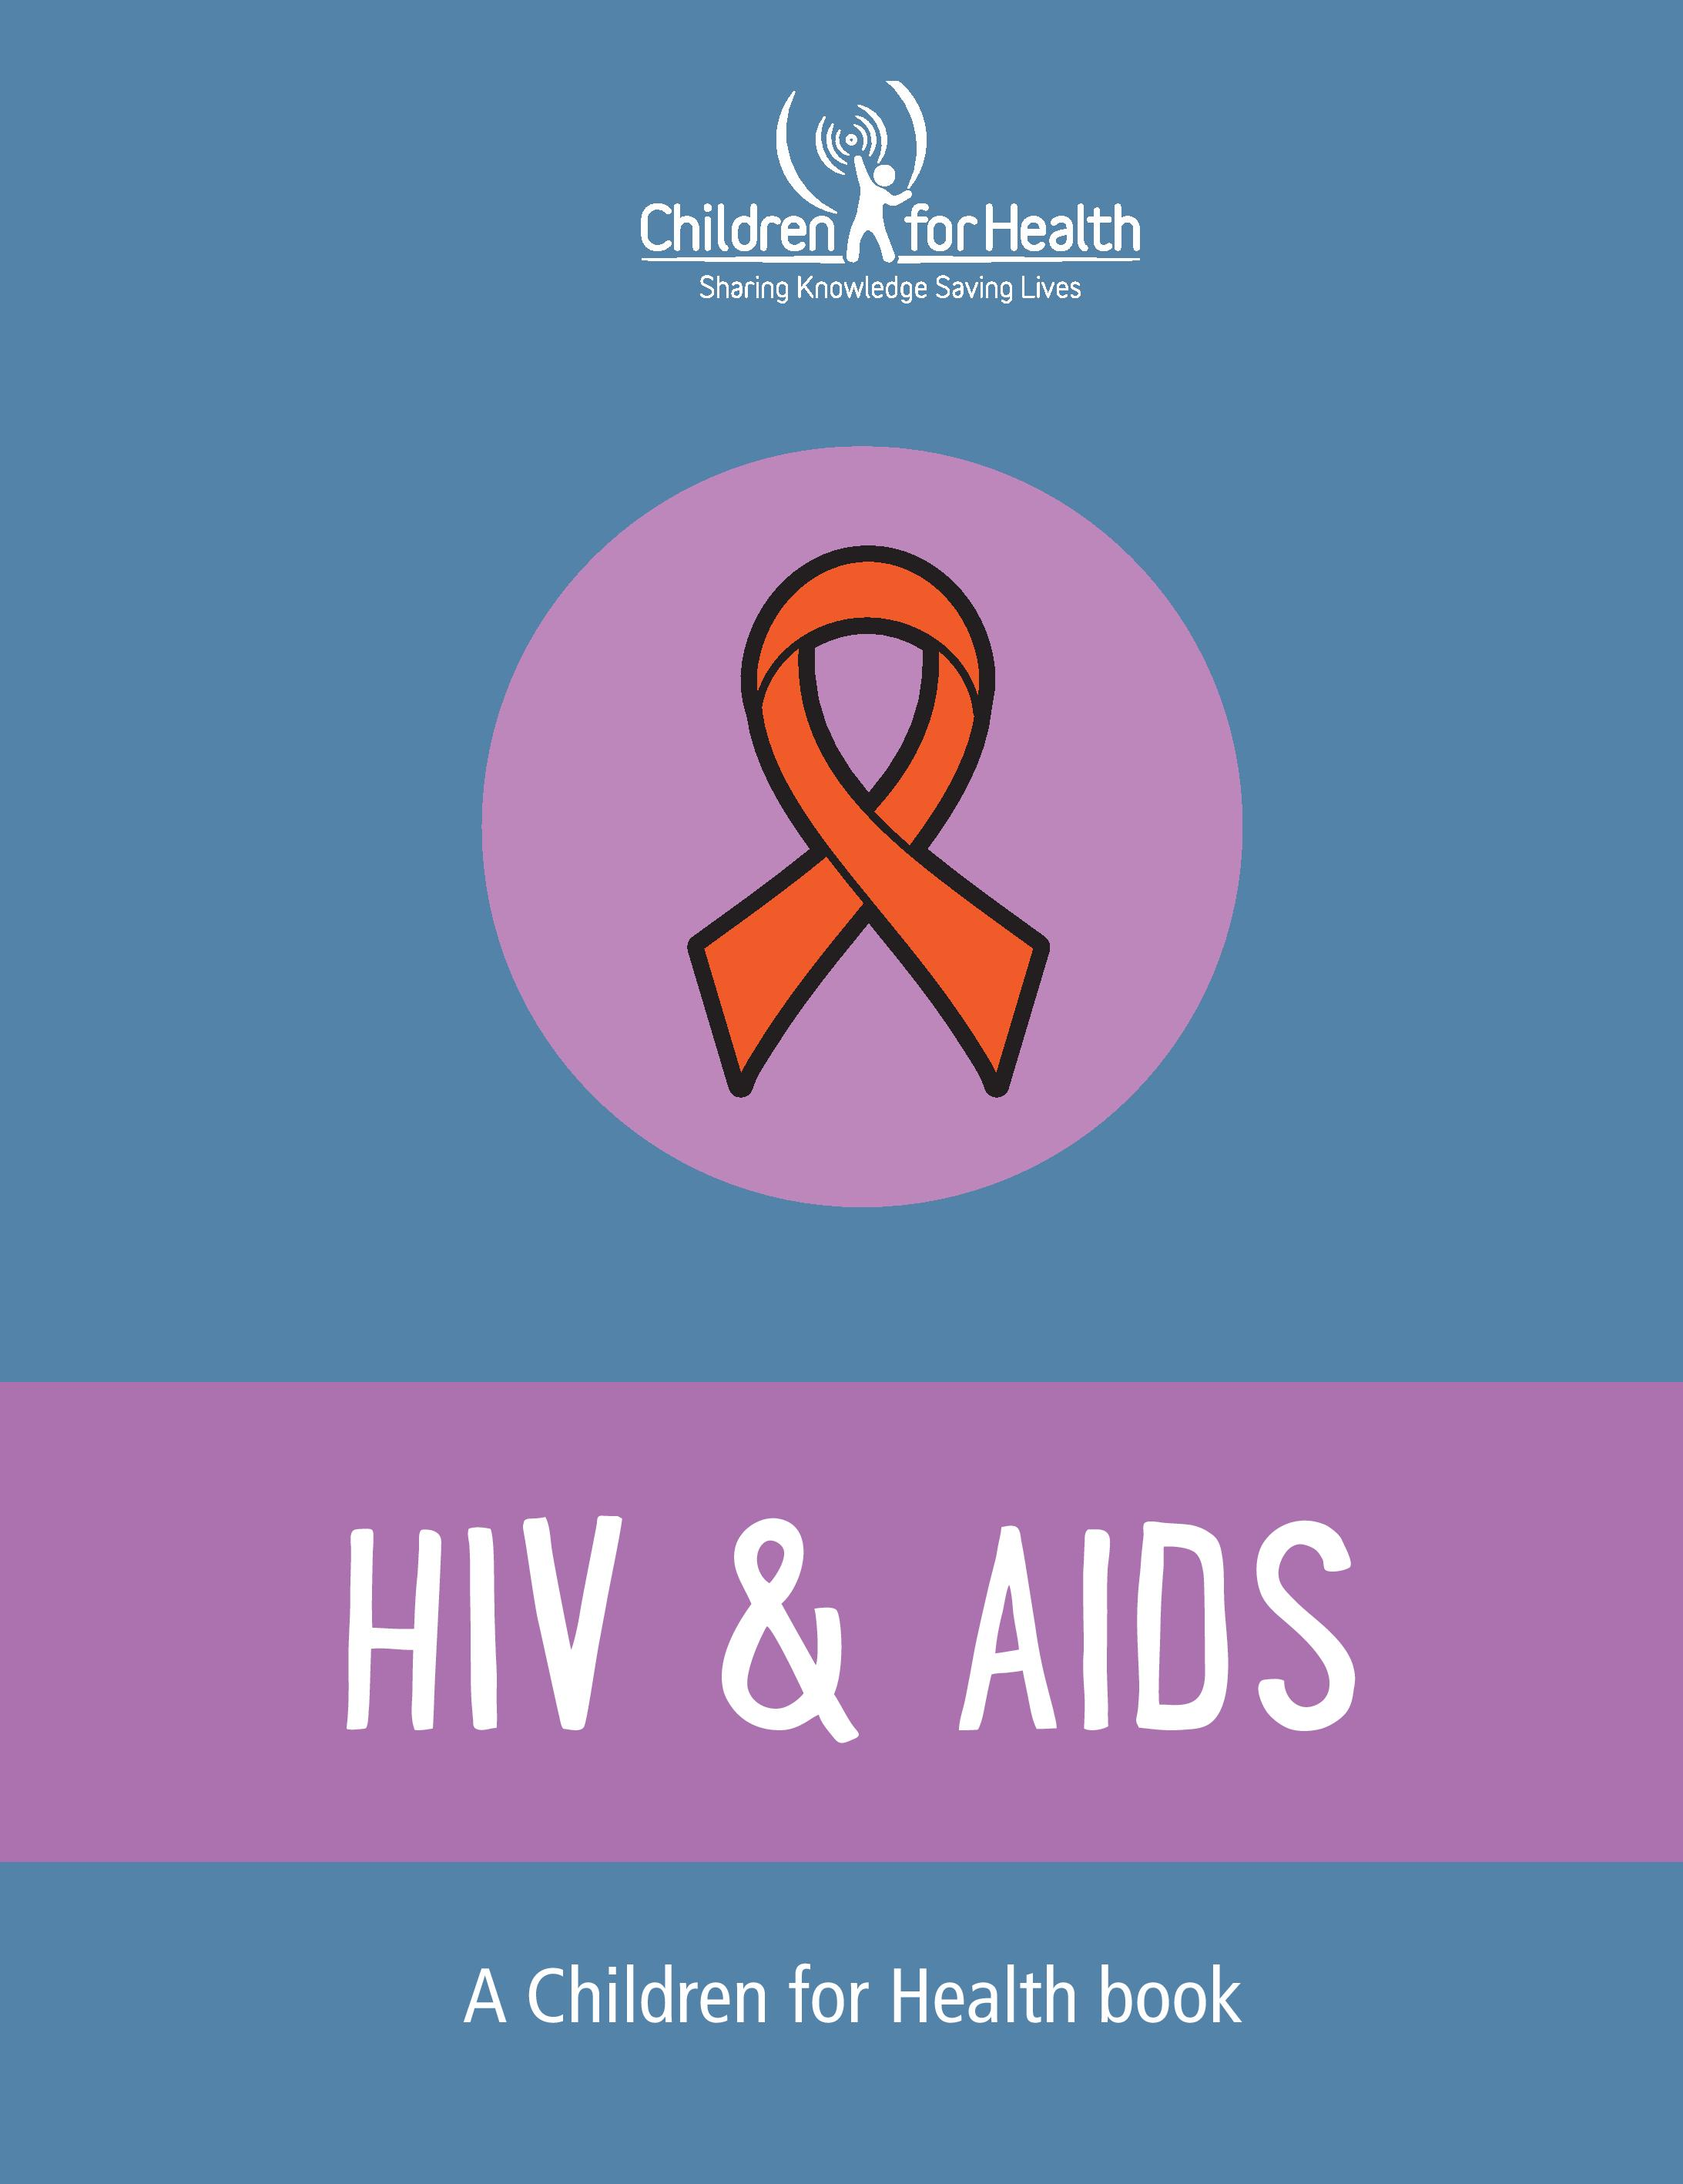 A Children for Health storybook cover on HIV and AIDS